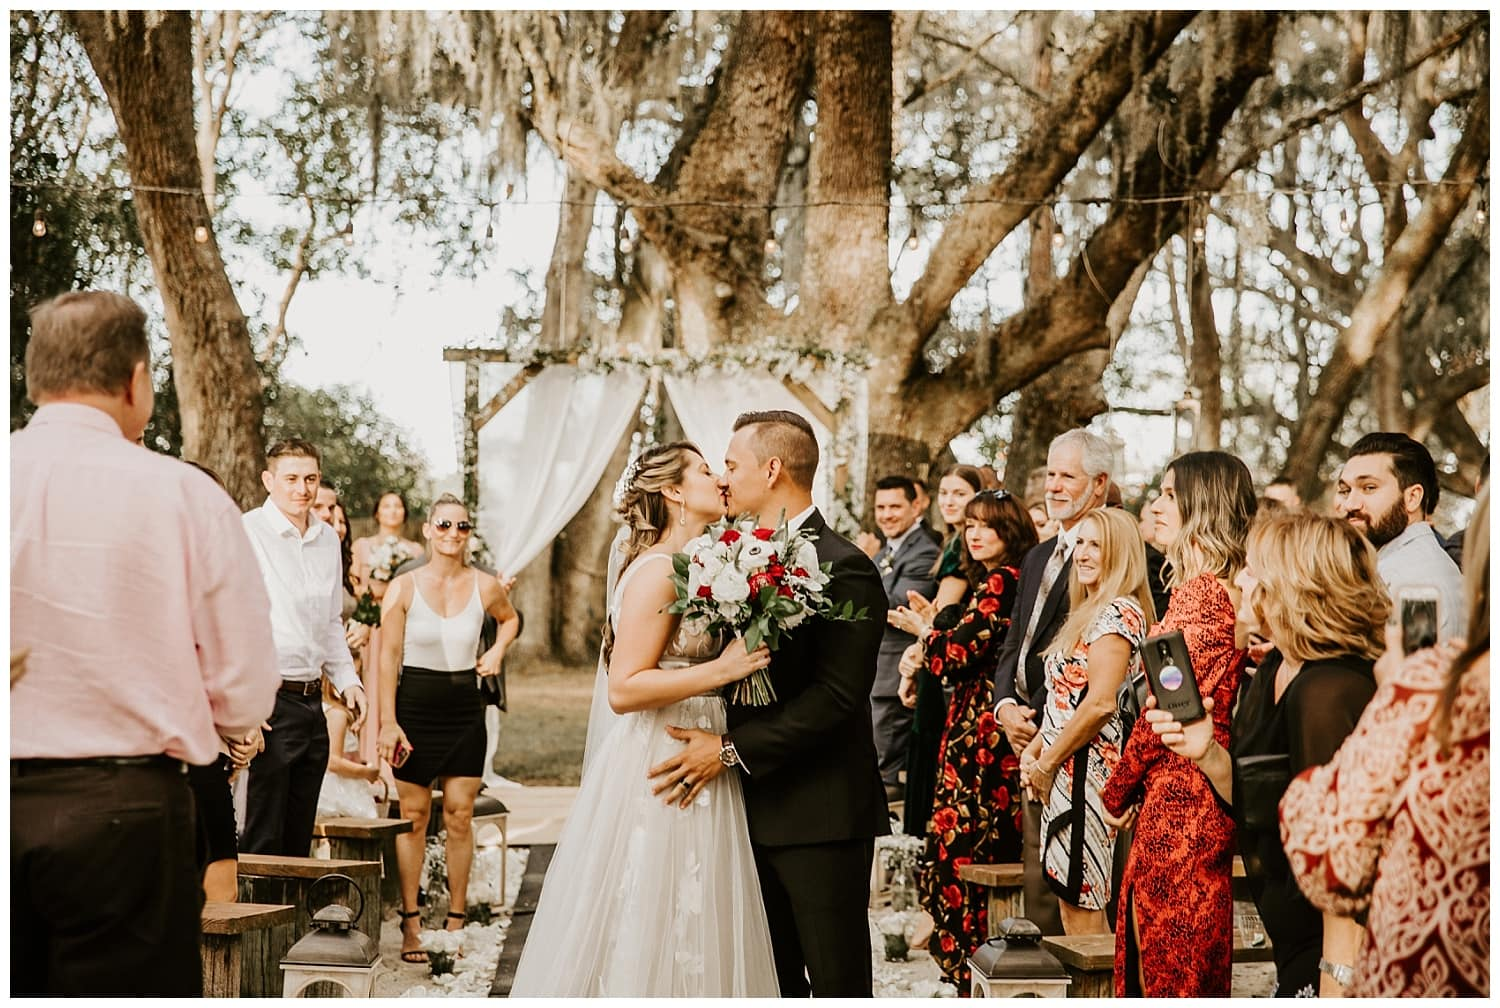 KC Creek Ranch,KC Creek Ranch Wedding,clearwater wedding photographer,farm wedding,florida wedding,fort lauderdale wedding photographer,horse farm wedding,horse wedding,jacksonville wedding photographer,miami wedding photographer,orlando wedding photographer,palm beaach wedding photographer,ranch wedding,saint augustine wedding photographer,south florida photographer,south florida wedding photographer,stuart wedding photographer,tampa wedding photographer,vero beach wedding photographer,welsey chapel wedding photographer,willowby by watters dress,willowby by watters galatea,willowby by watters wedding dress,